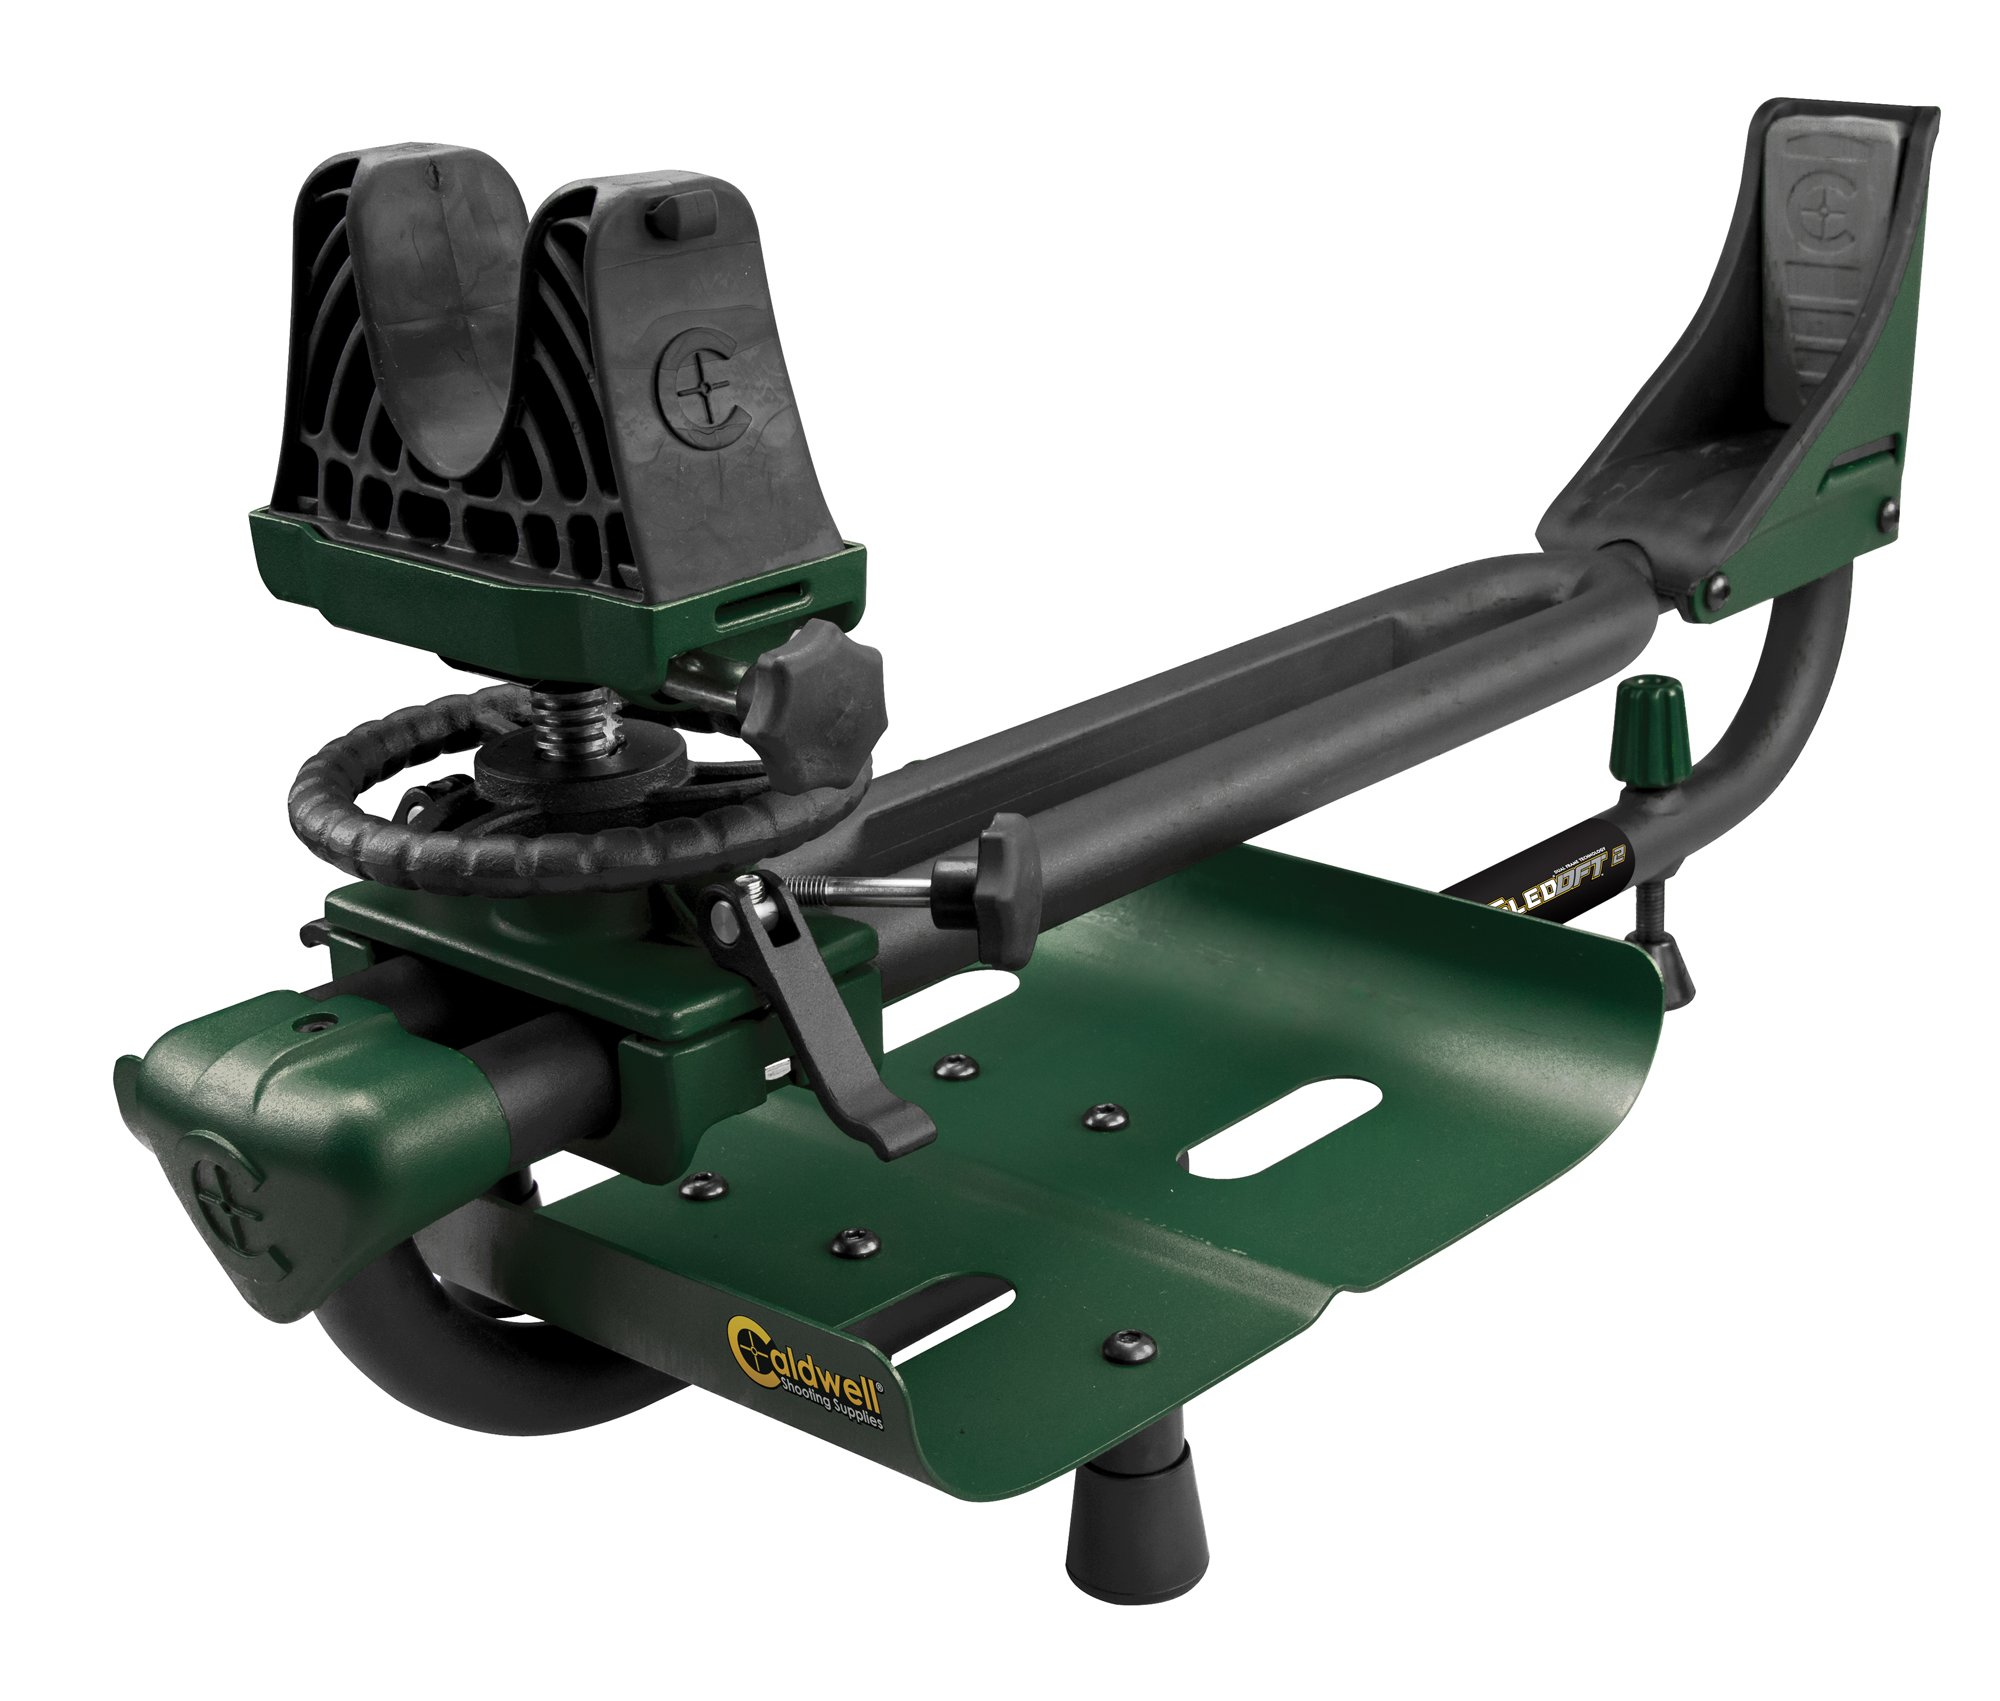 Caldwell Lead Sled DFT 2 Adjustable Ambidextrous Recoil Reducing Rifle Shooting Rest for Outdoor Range by Caldwell